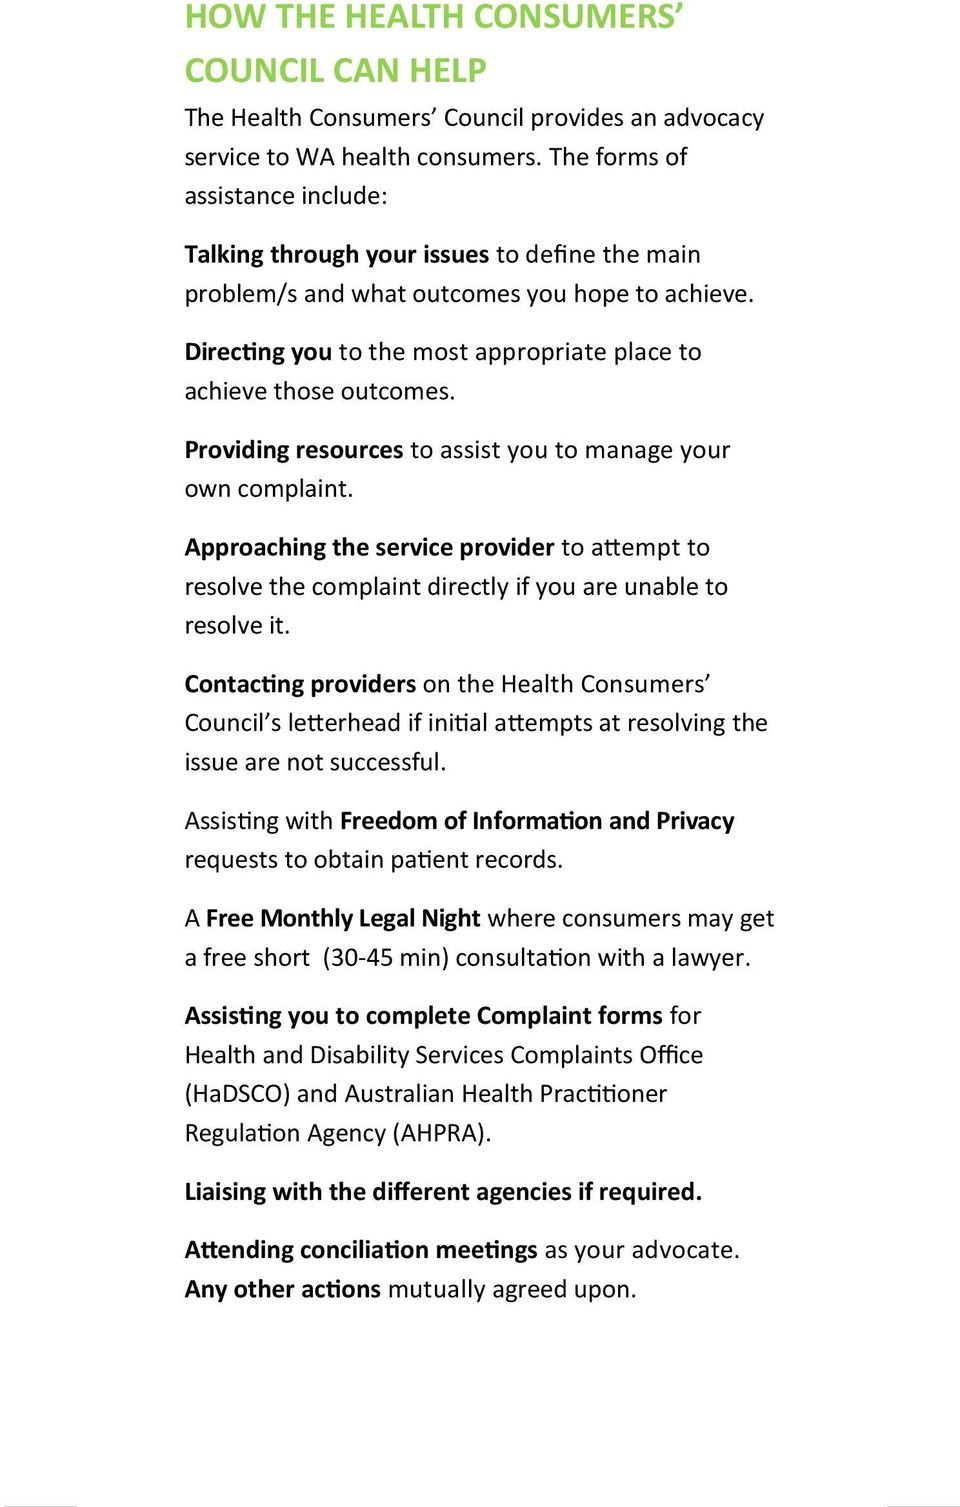 Providing resources to assist you to manage your own complaint. Approaching the service provider to a!empt to resolve the complaint directly if you are unable to resolve it.